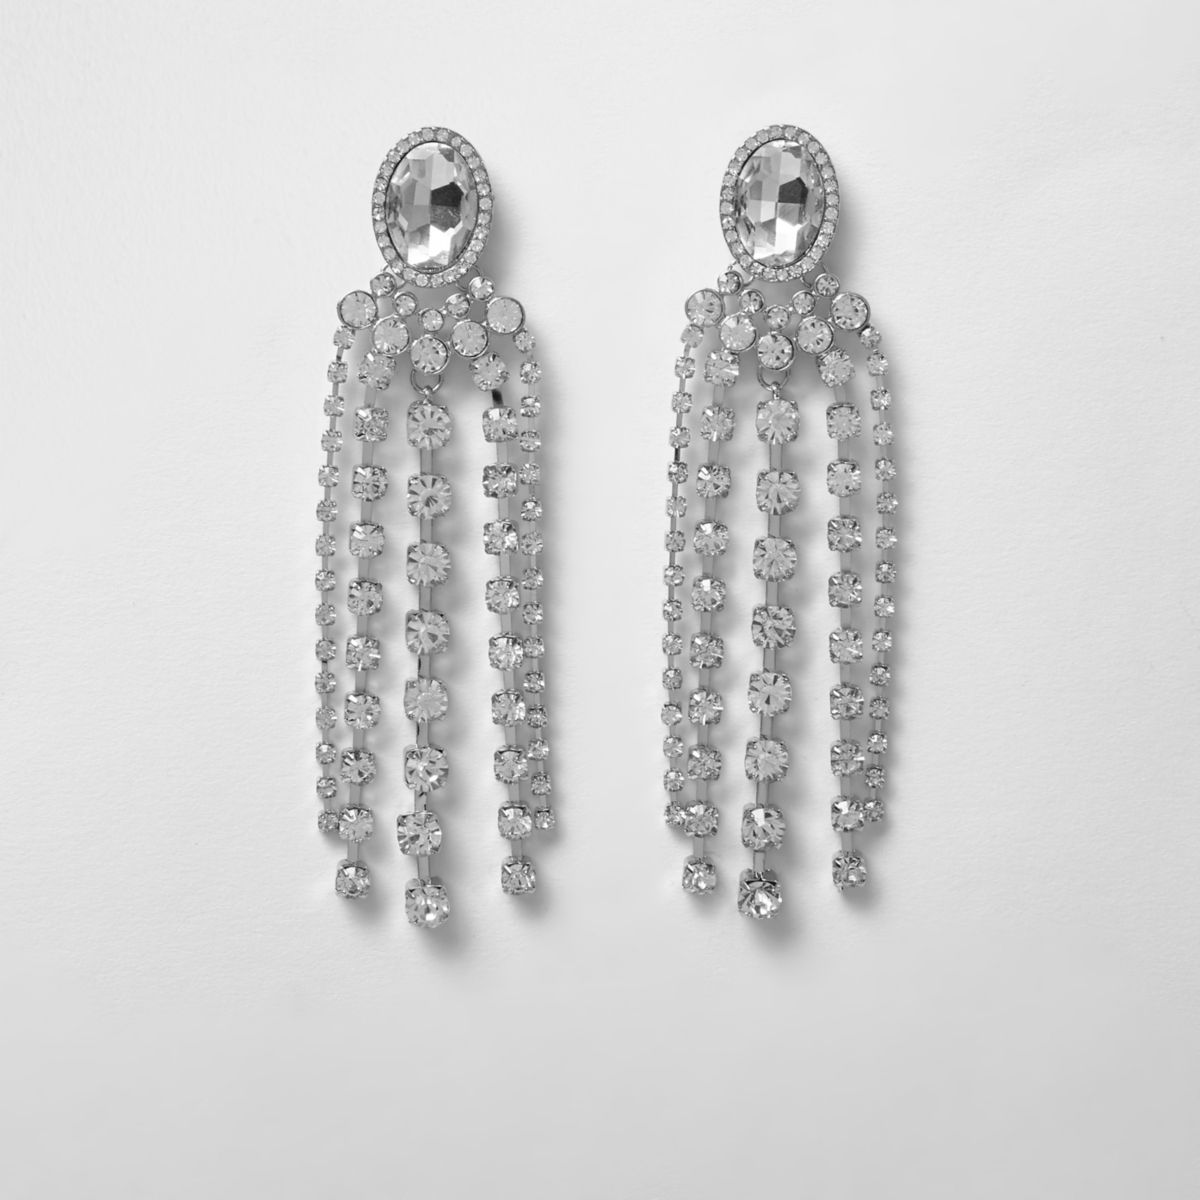 Rhinestone jewel dangle earrings